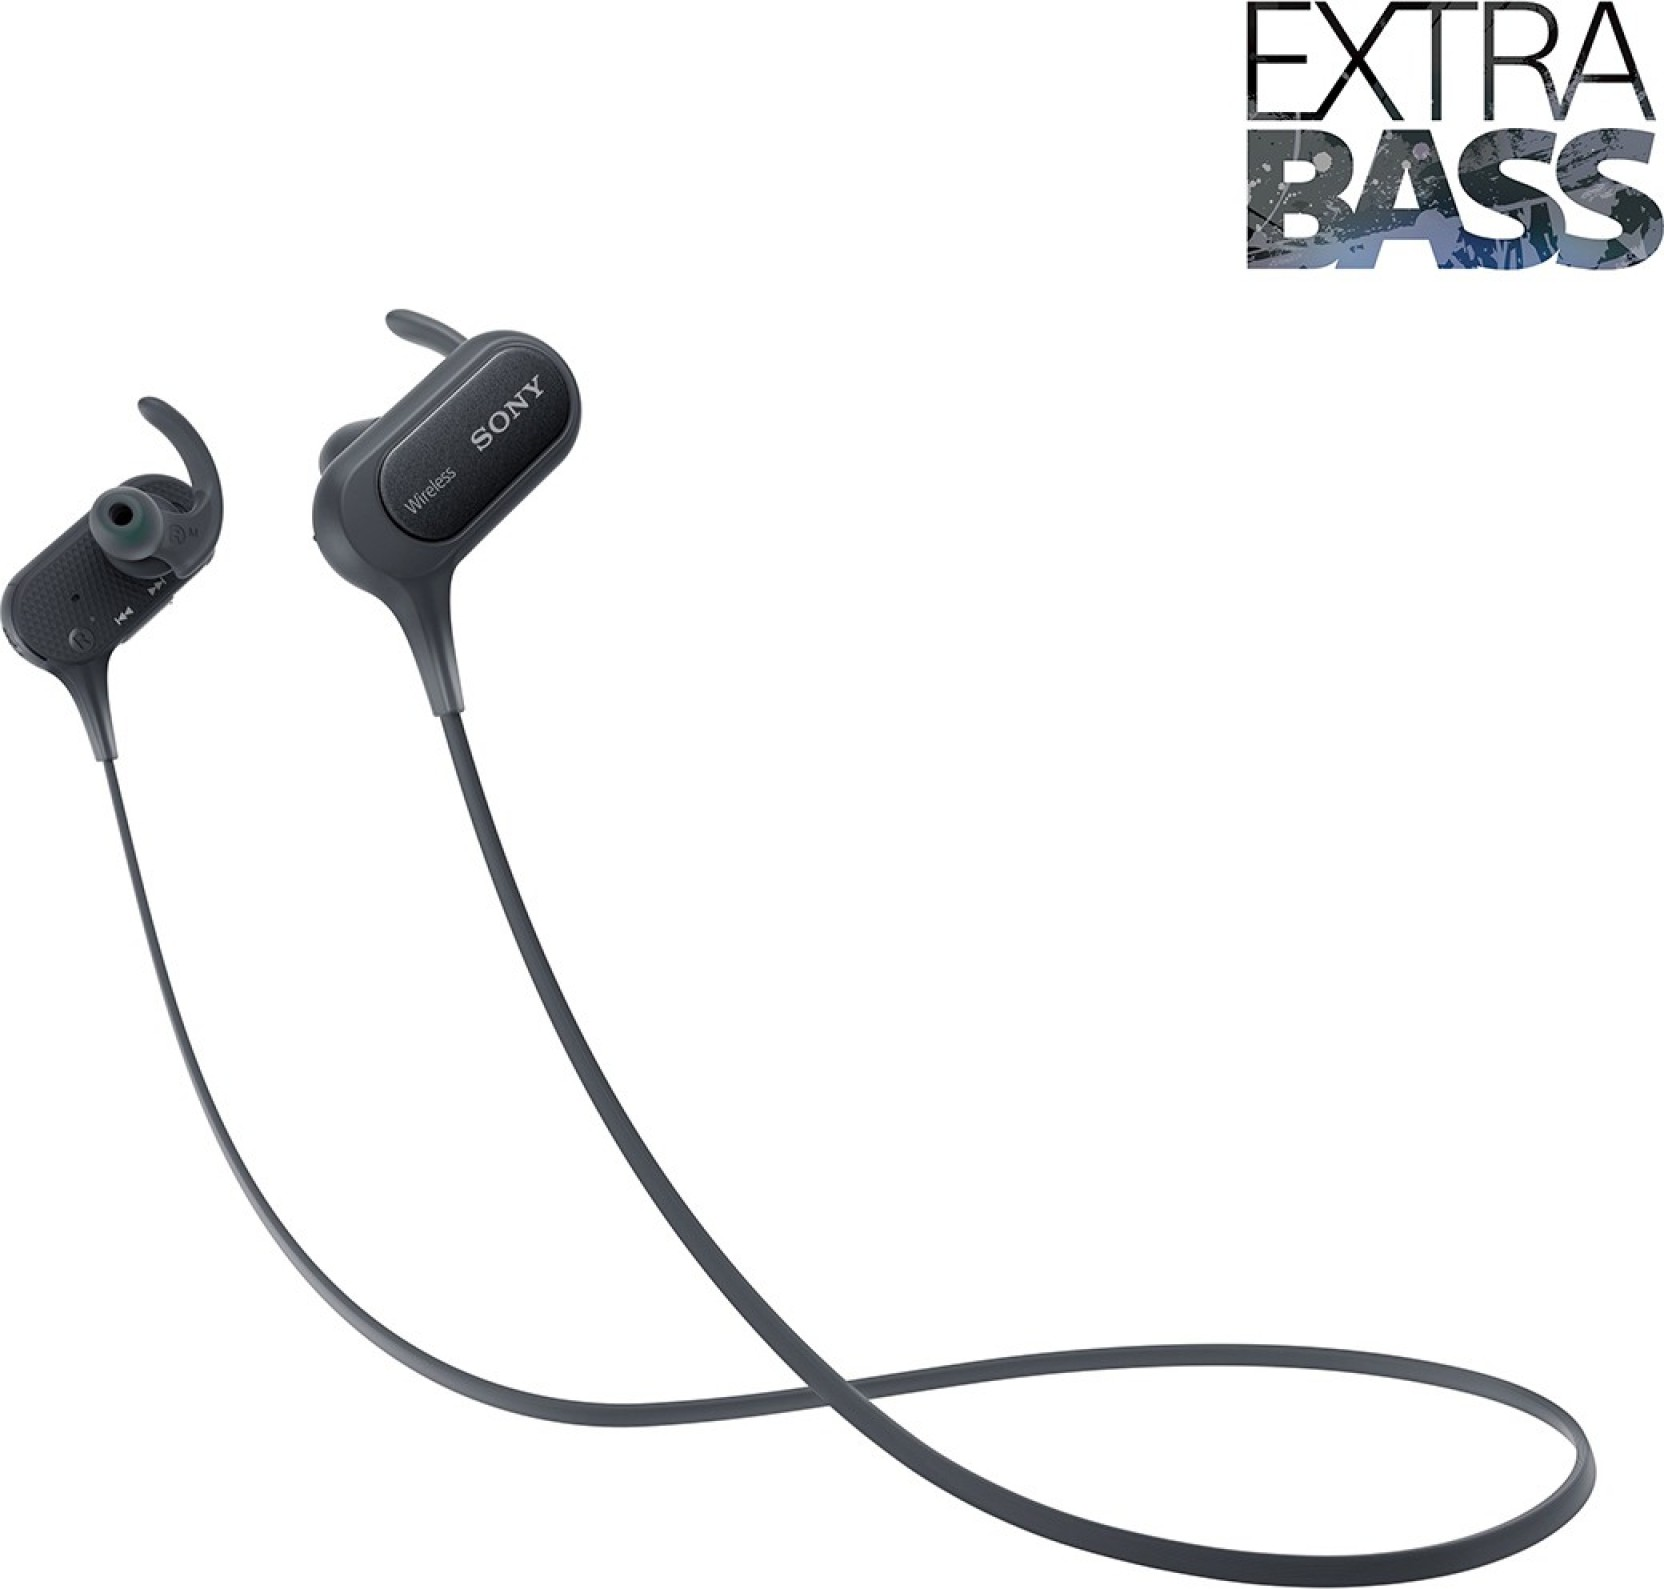 Sony Mdr Xb50bsbze 92475410 Bluetooth Headphone Price In India Buy Xb55ap W White Add To Cart